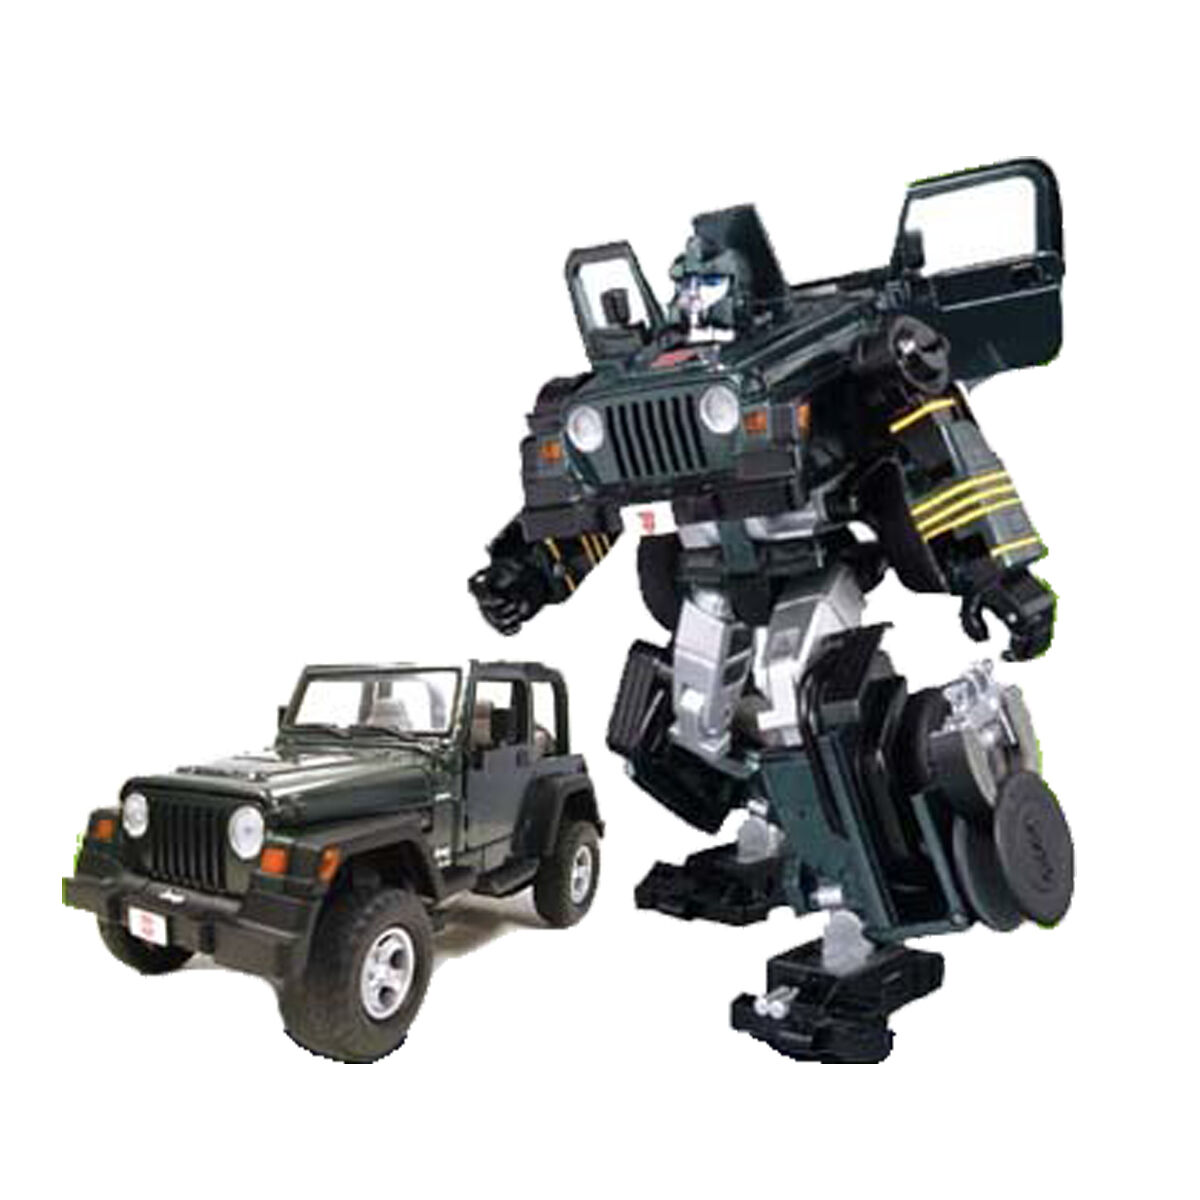 Binaltech BT-04 Hound Jeep Wrangler carrocería de metal - Transformers